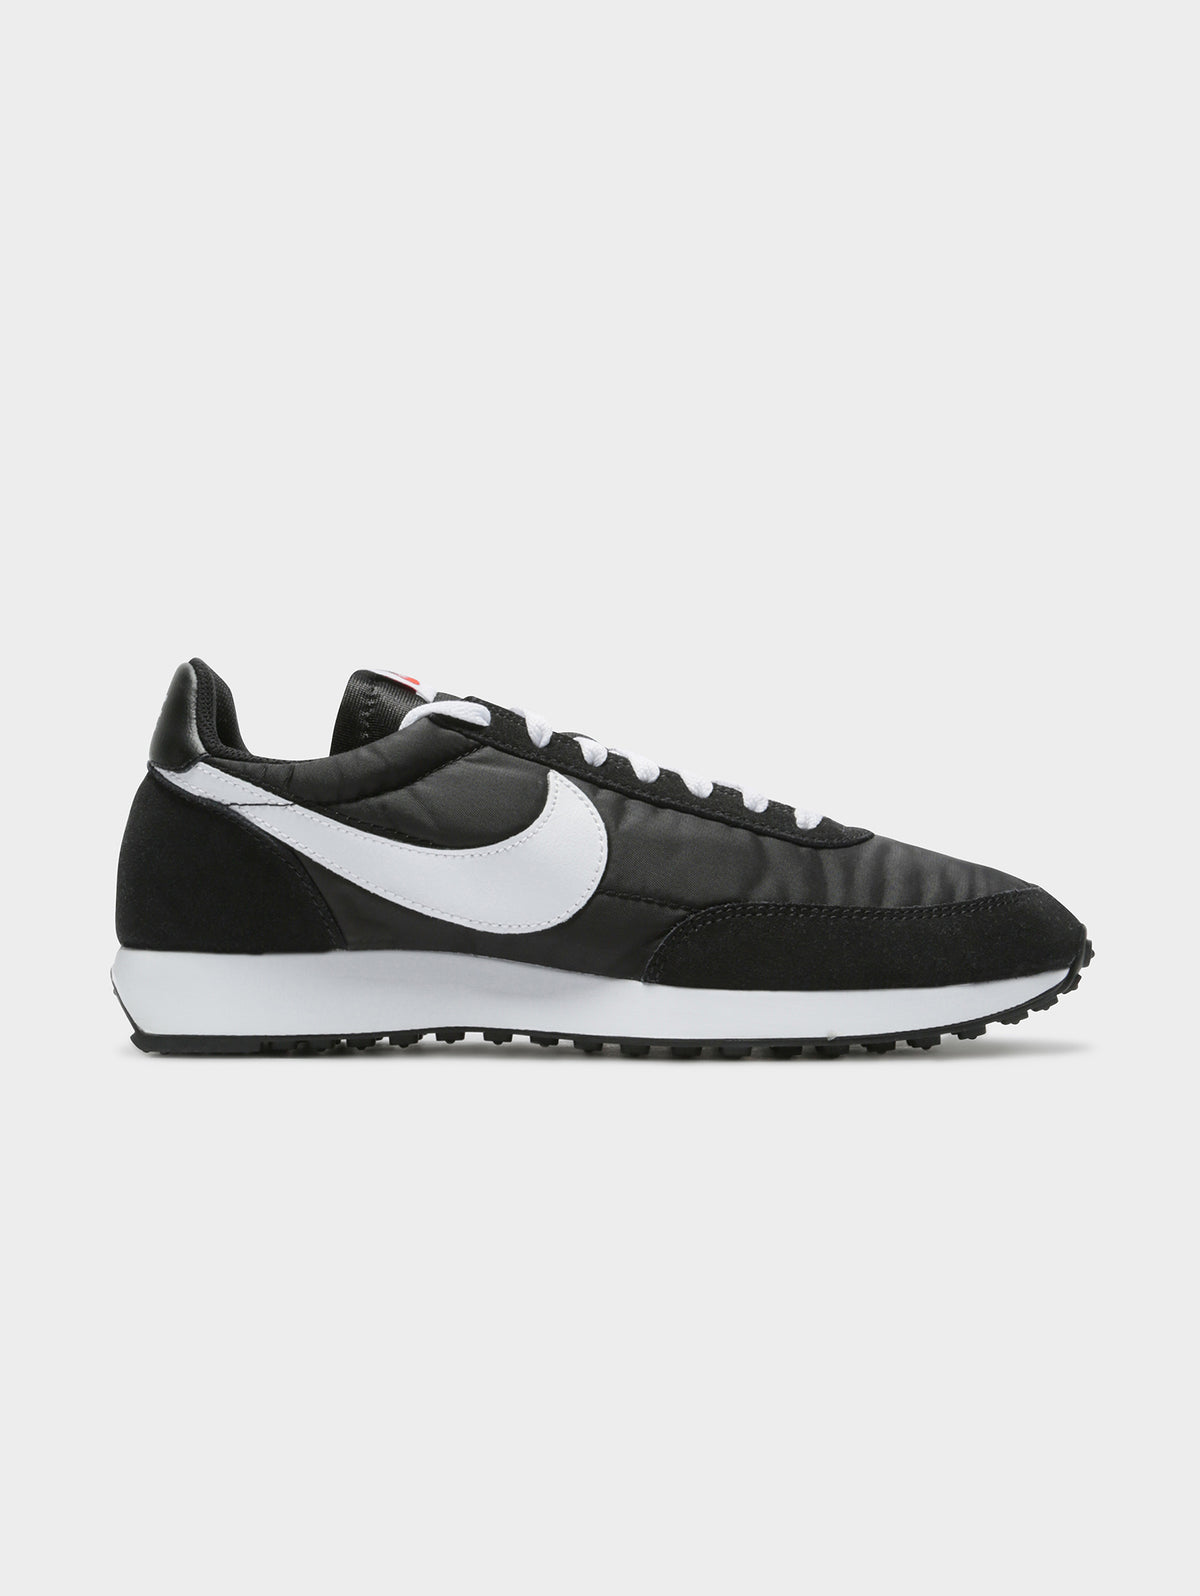 Unisex Air Tailwind 79 Sneakers in Black & White